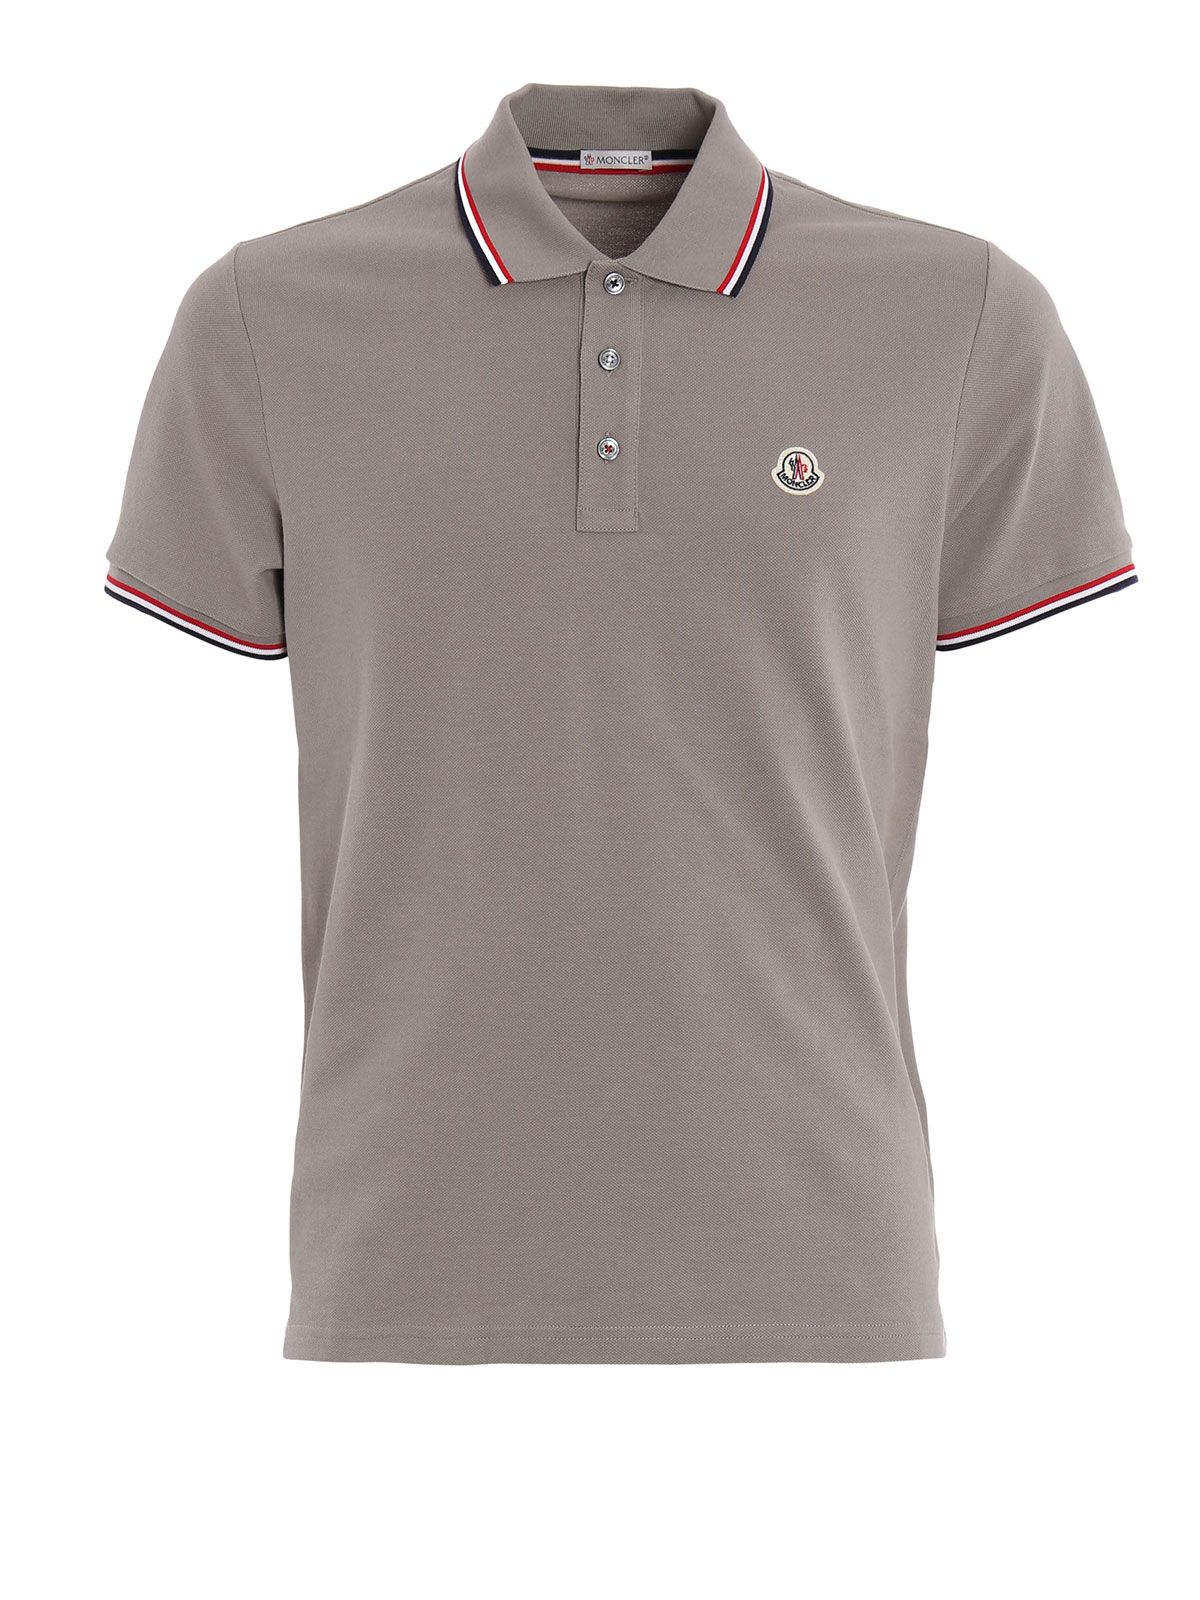 stitched logo pique polo by moncler polo shirts ikrix. Black Bedroom Furniture Sets. Home Design Ideas